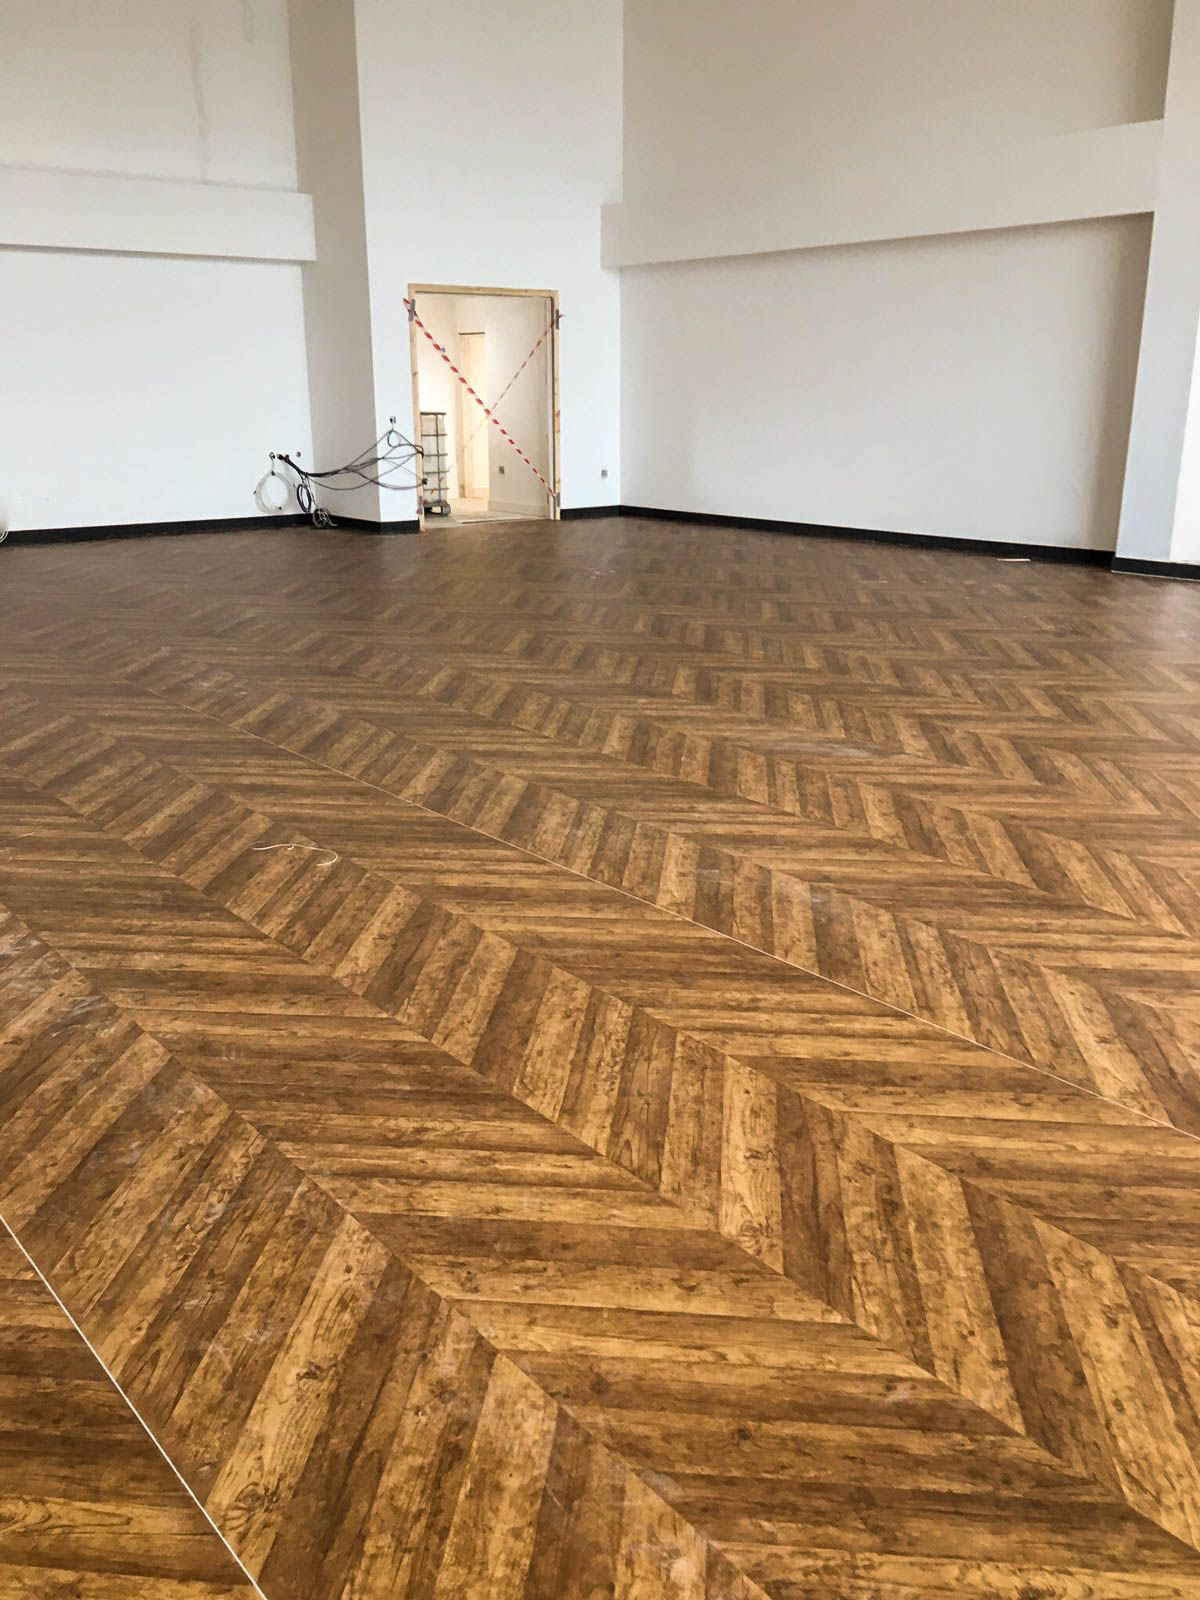 Polyflor Expona Flow Reclaimed Chevron Installed By S D Flooring At Ron Dearing Utc Hull